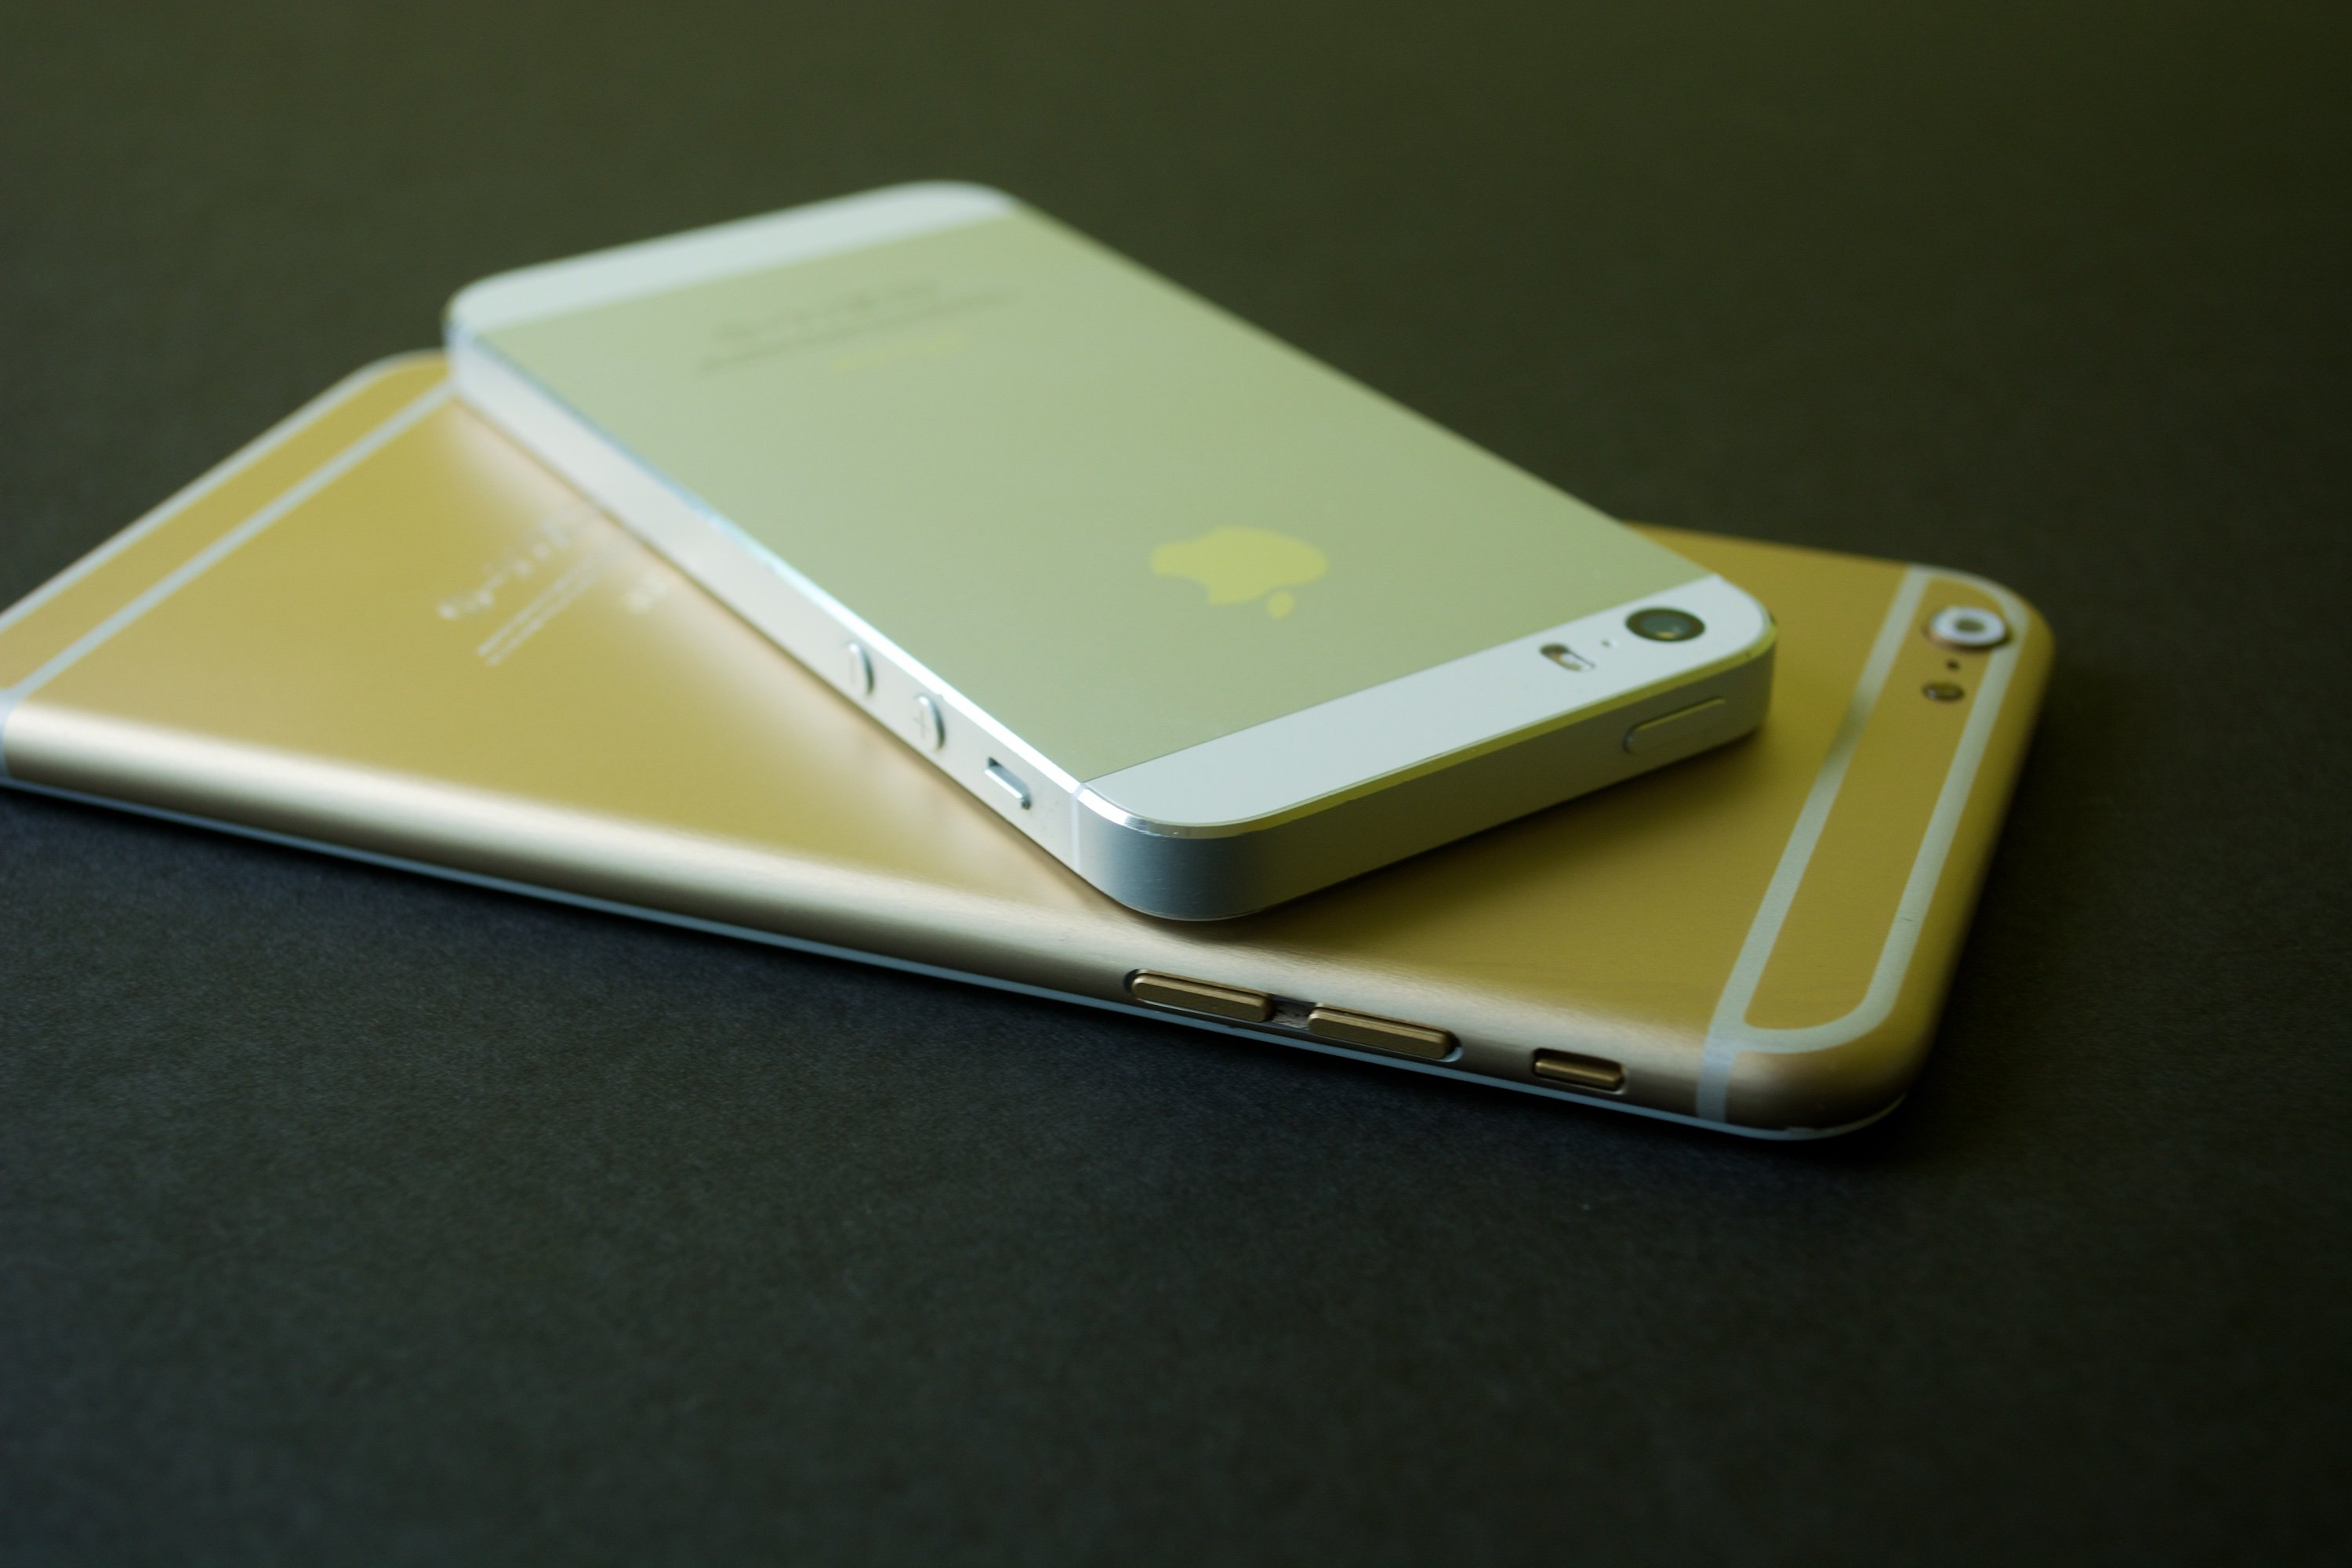 The new design makes the large iPhone 6 easier to hold.